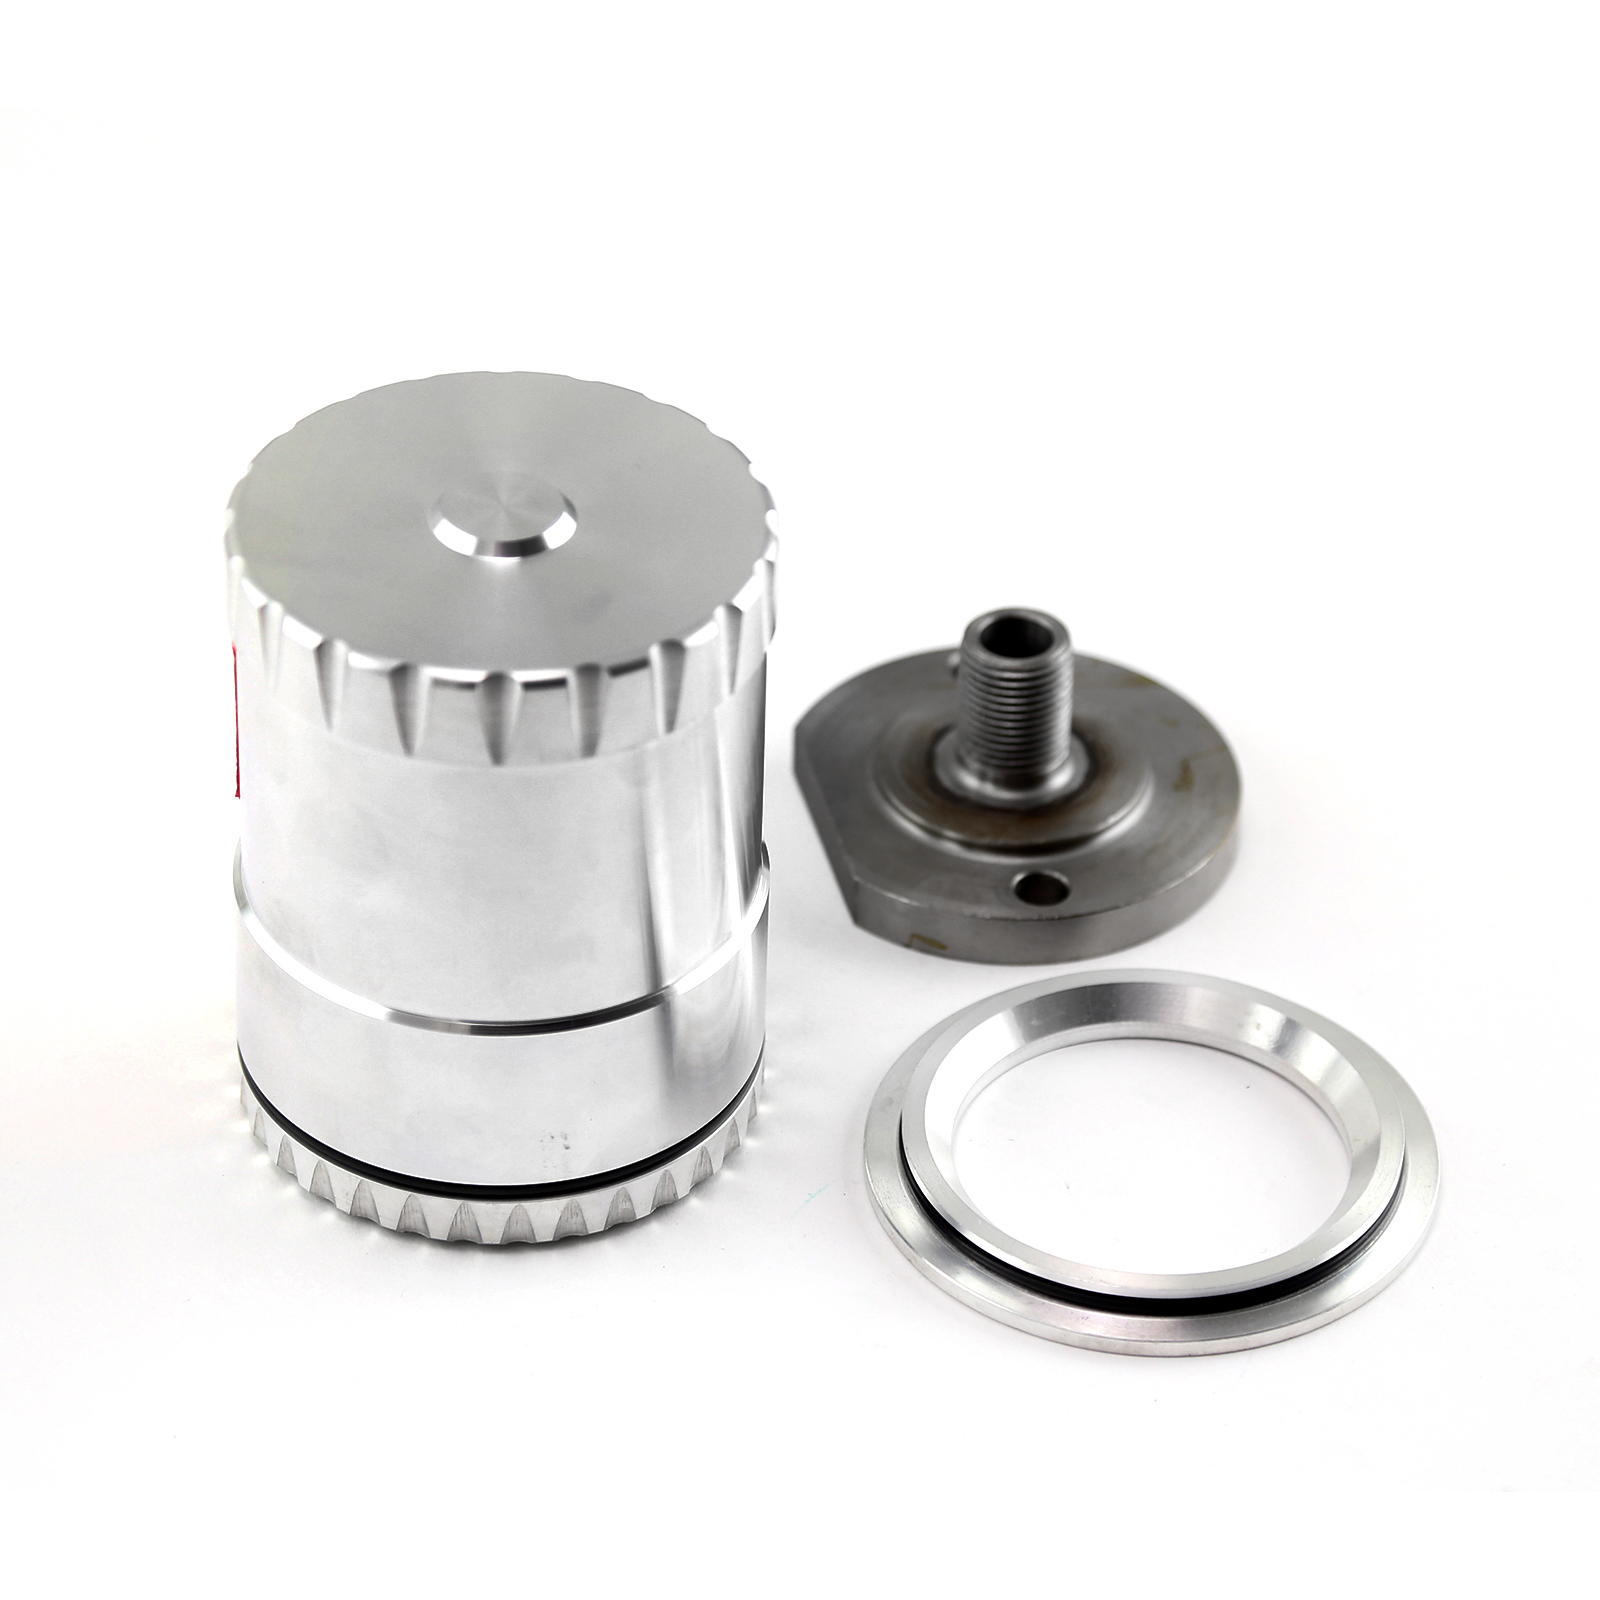 GM Chevy Billet Aluminum Reusable Oil Filter w/Stainless Steel Element & Magnet